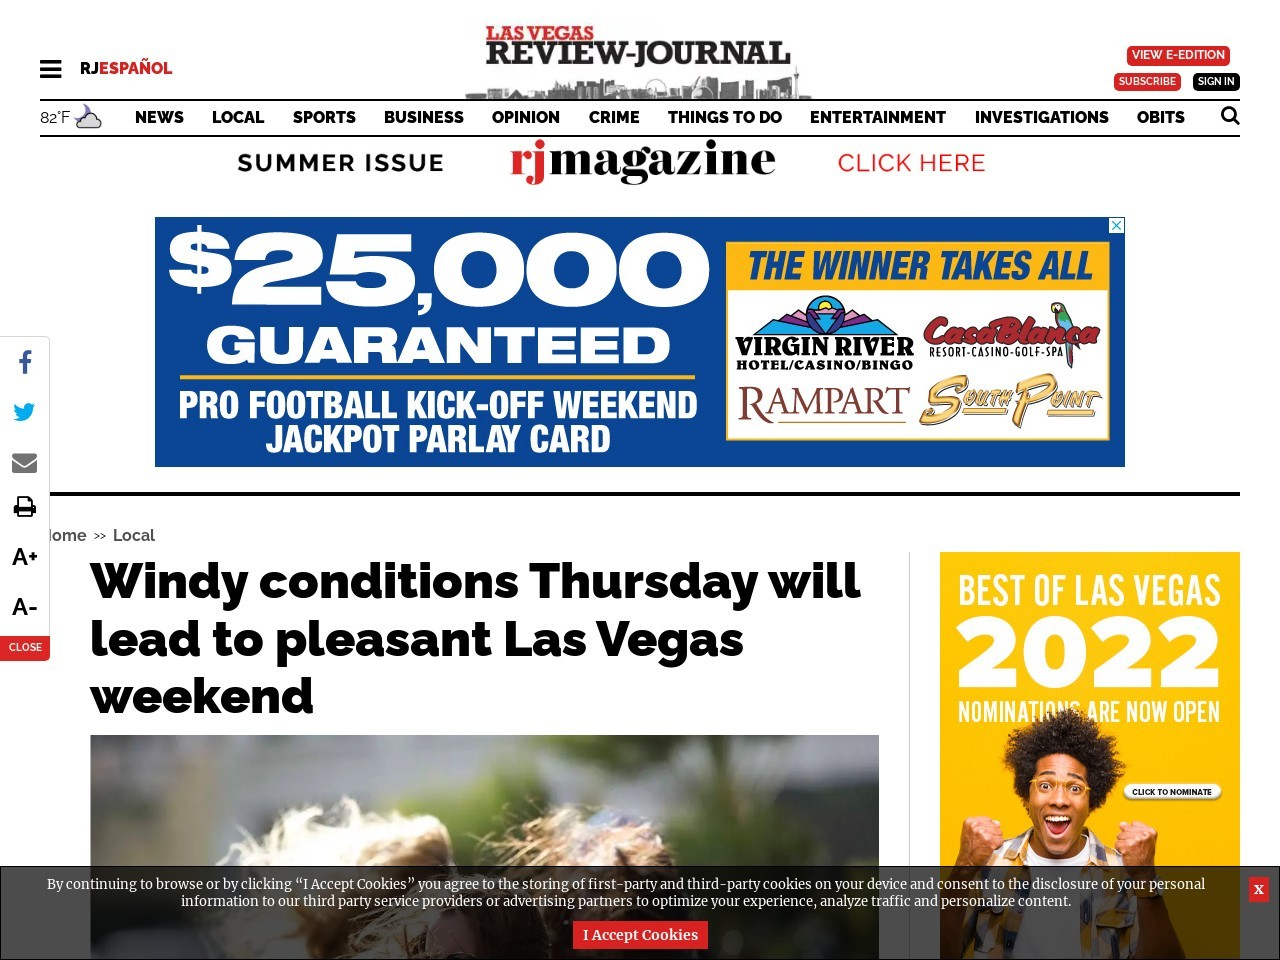 Windy conditions Thursday will lead to pleasant Las Vegas weekend